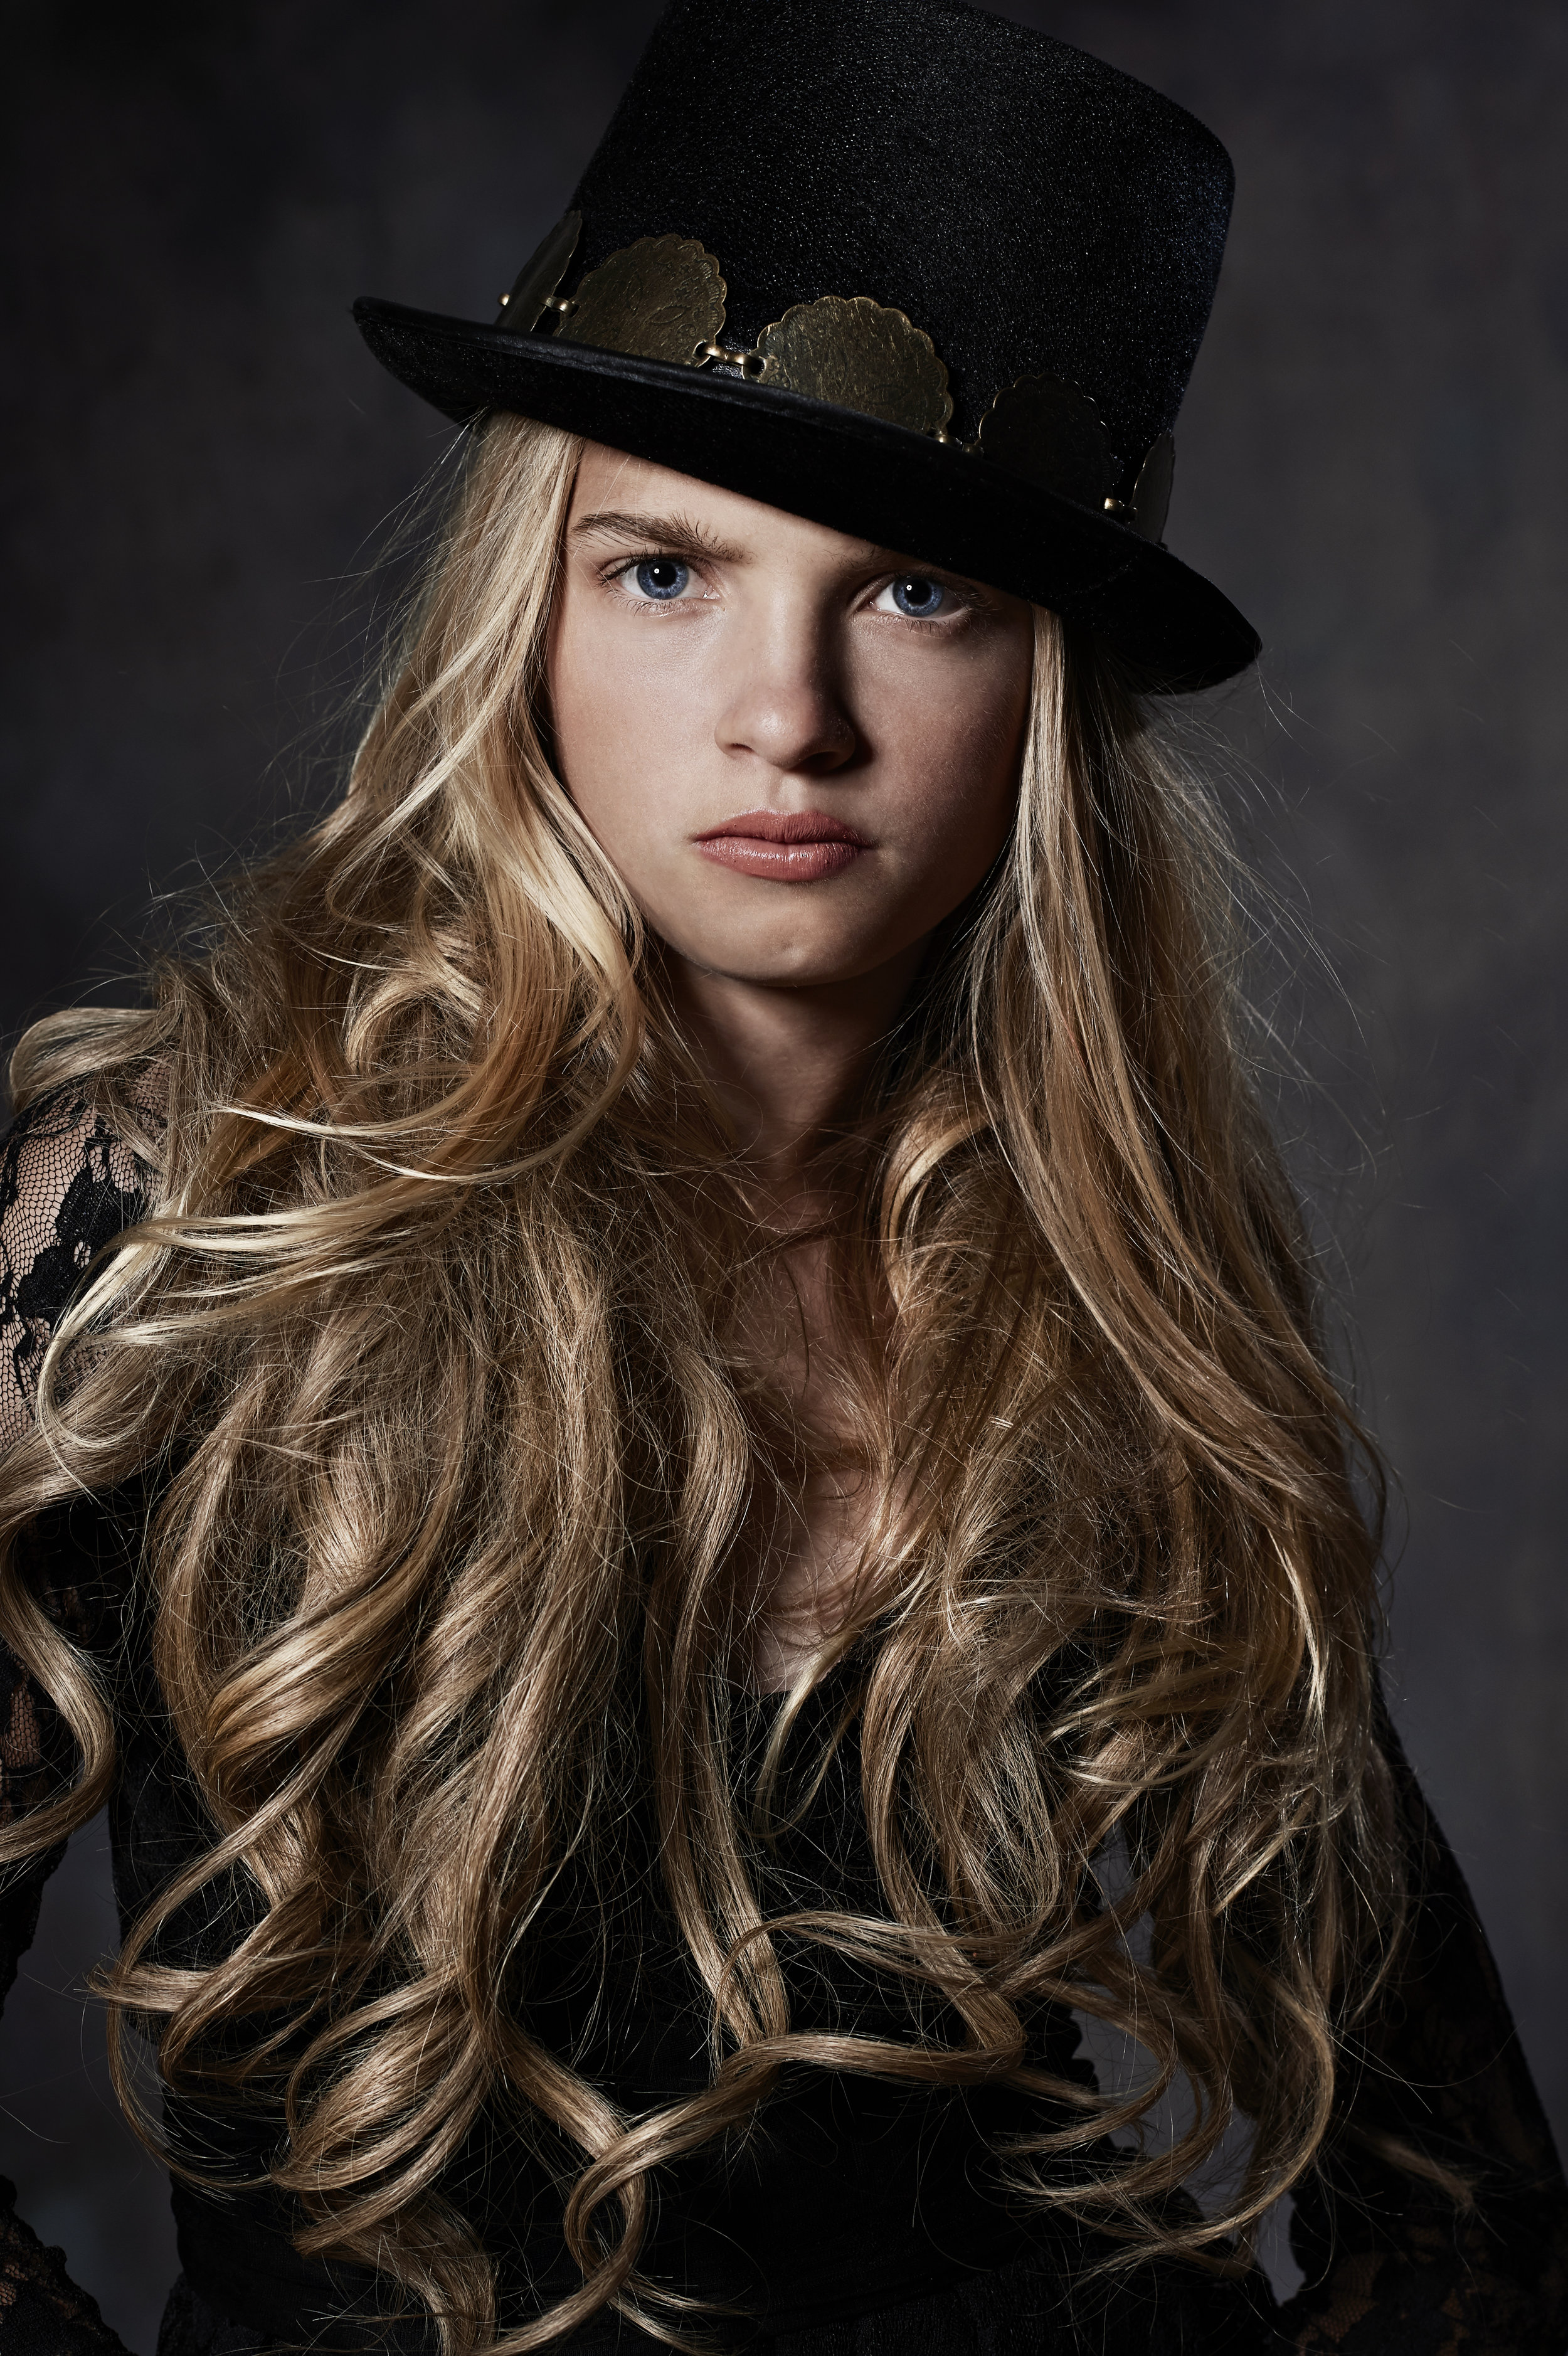 marta hewson - young blonde girl with steampunk top hat.jpg